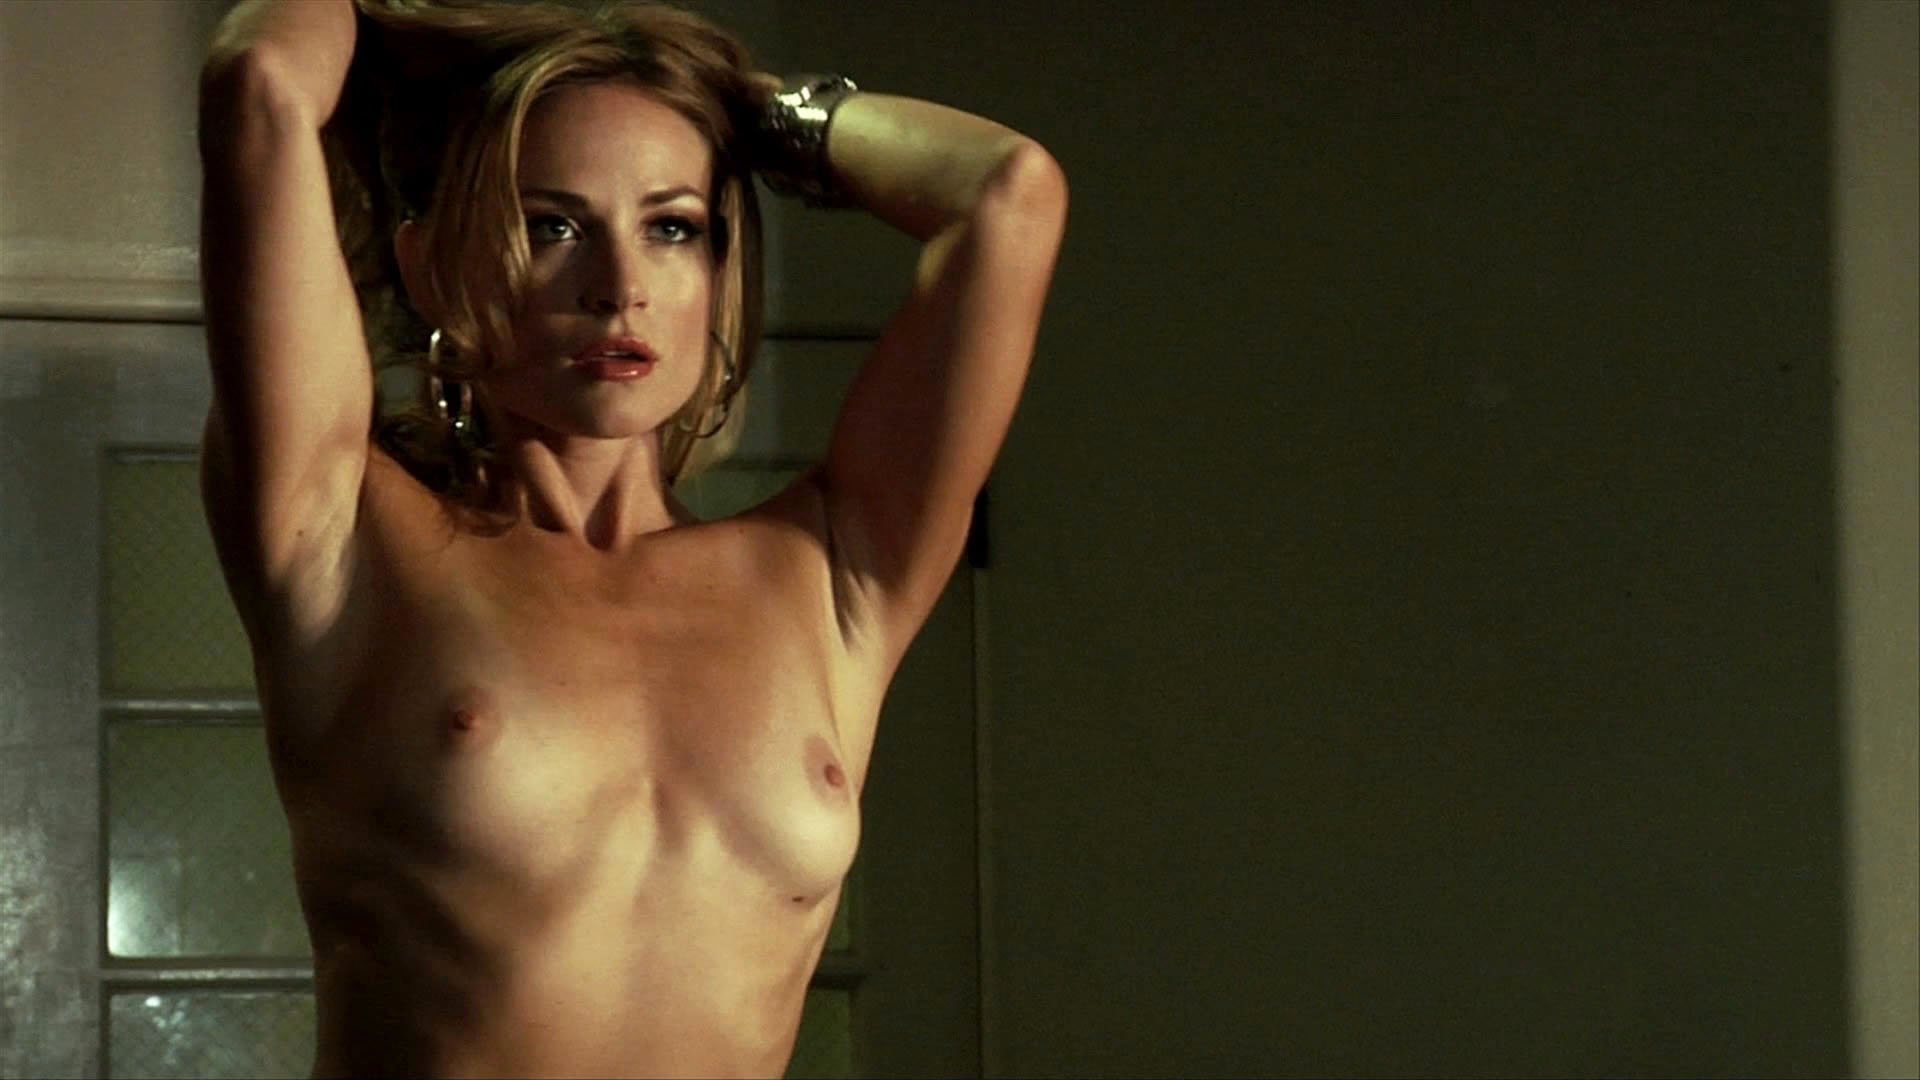 Daryl hannah topless reckless - 1 part 7